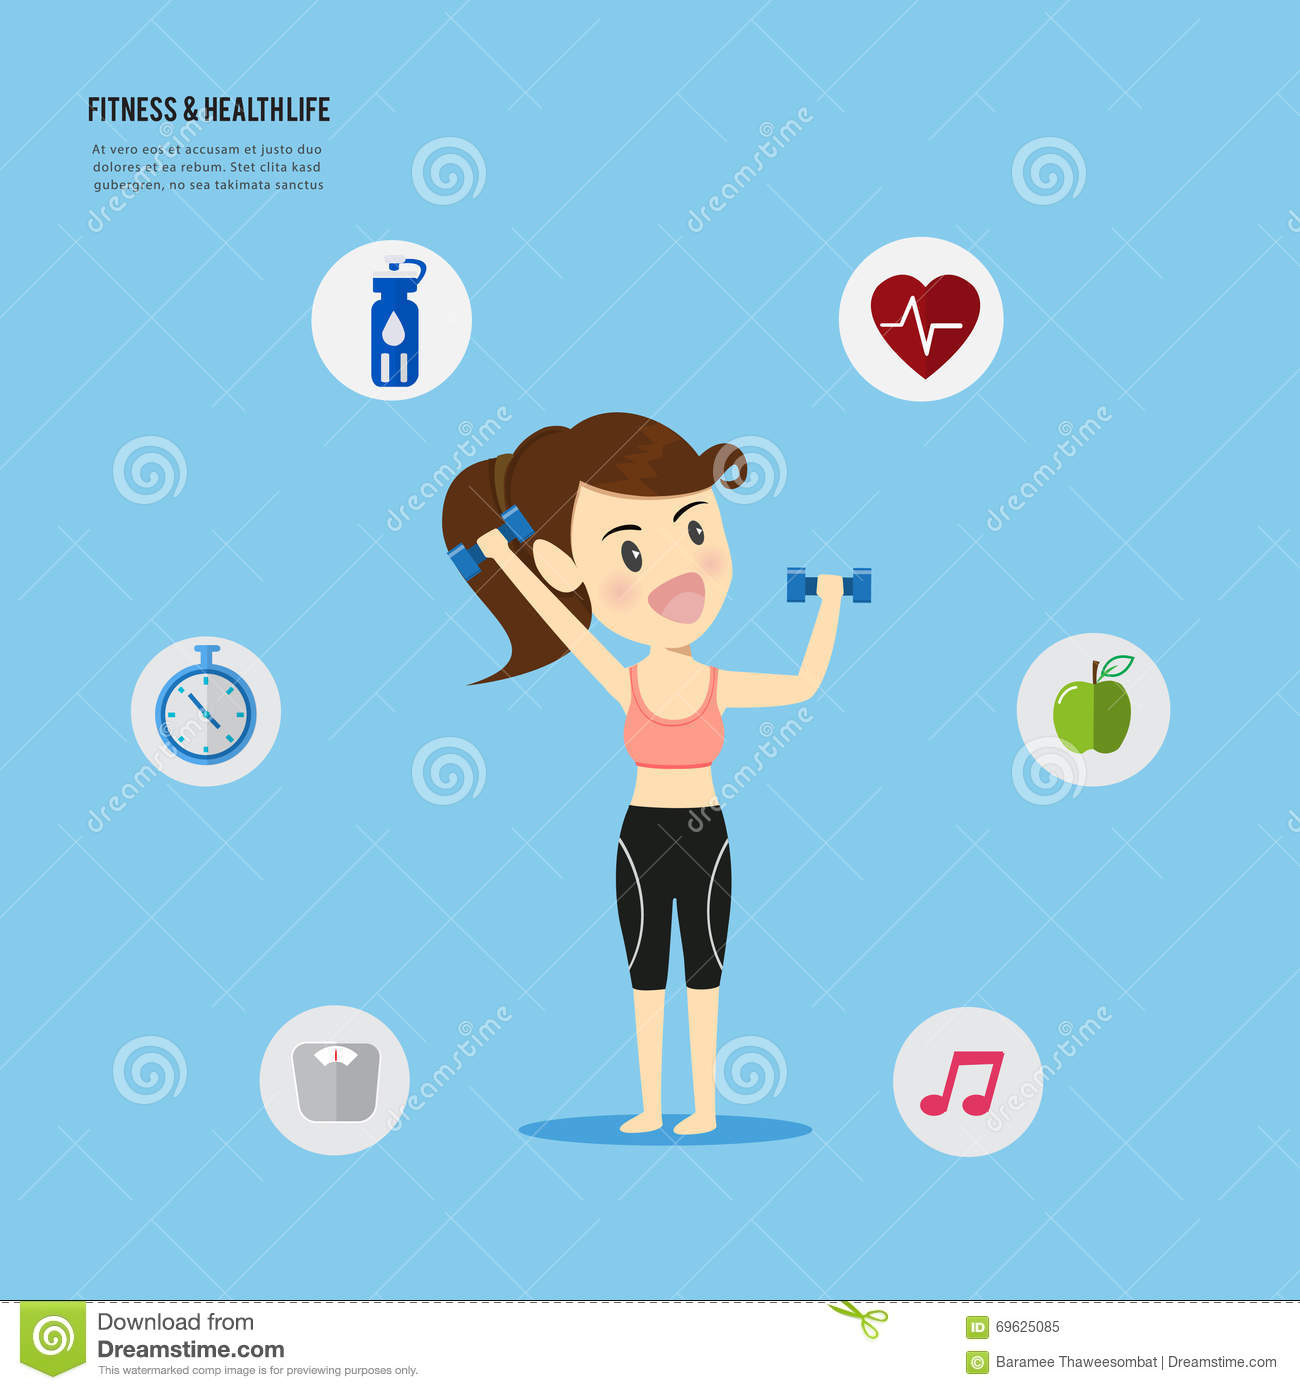 Women Play Fitness Fit Firm Healthy Lifestyle Concept Stock Vector Illustration Of Play Sport 69625085 It's time to wake up and change the bad habits. dreamstime com